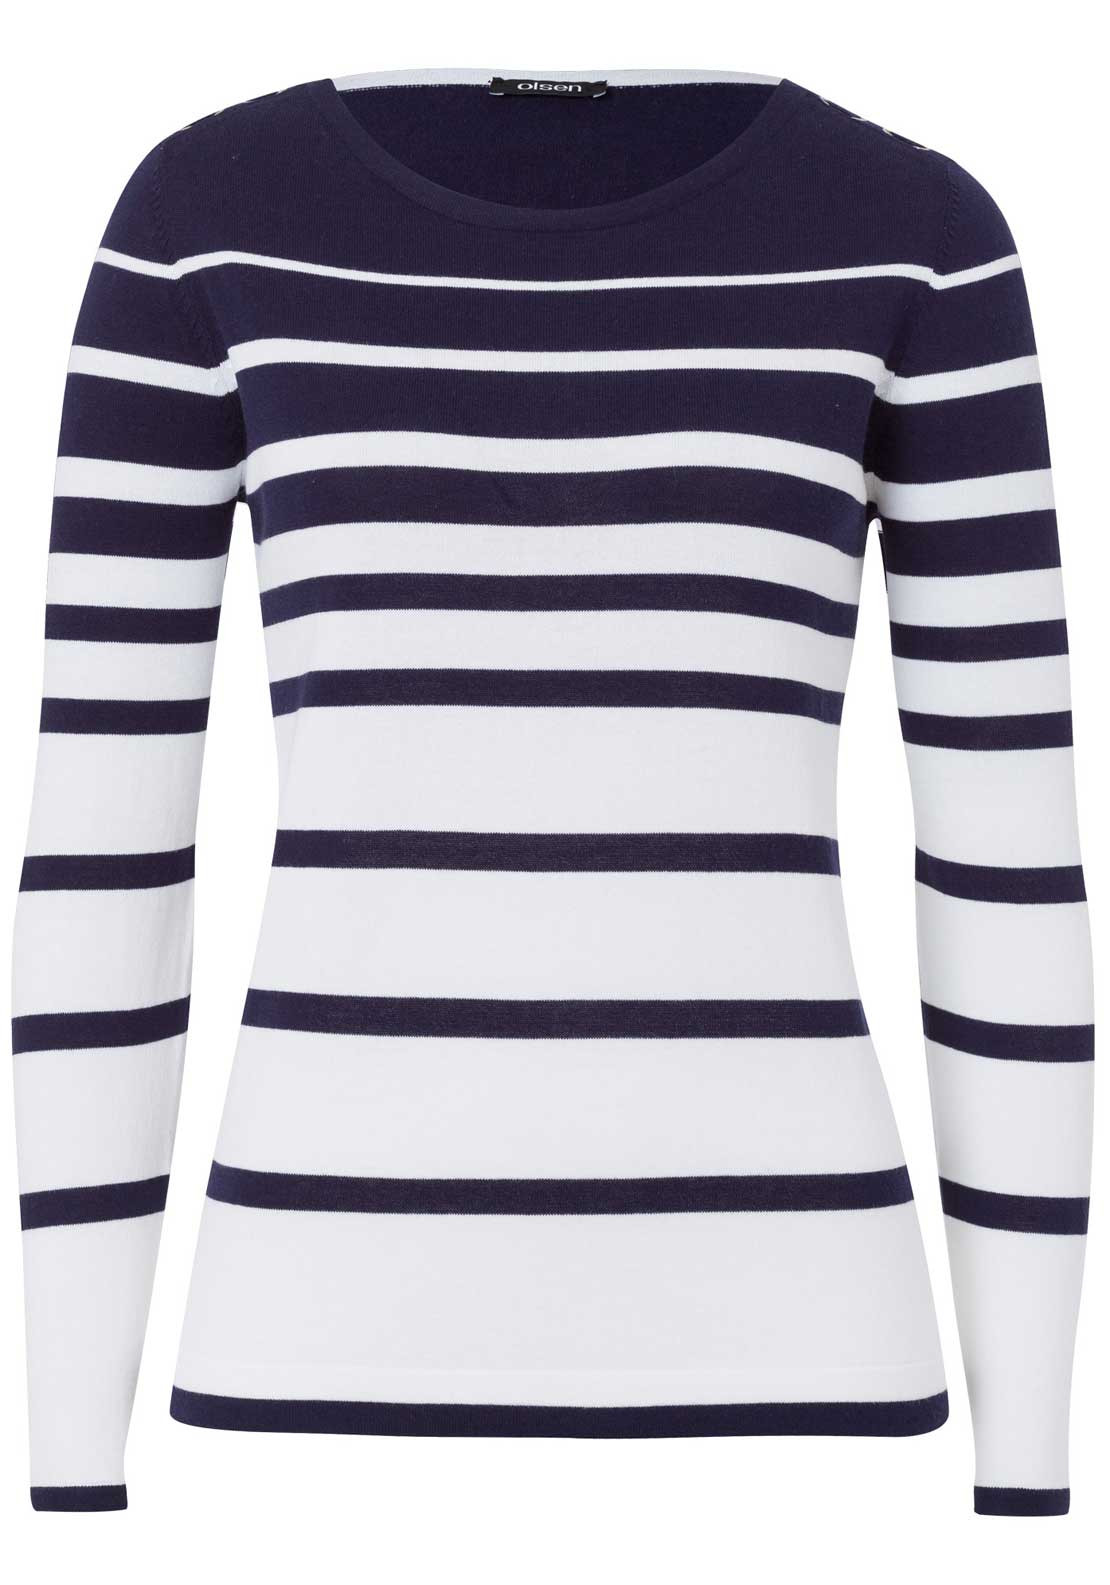 Olsen Striped Jumper Navy and White